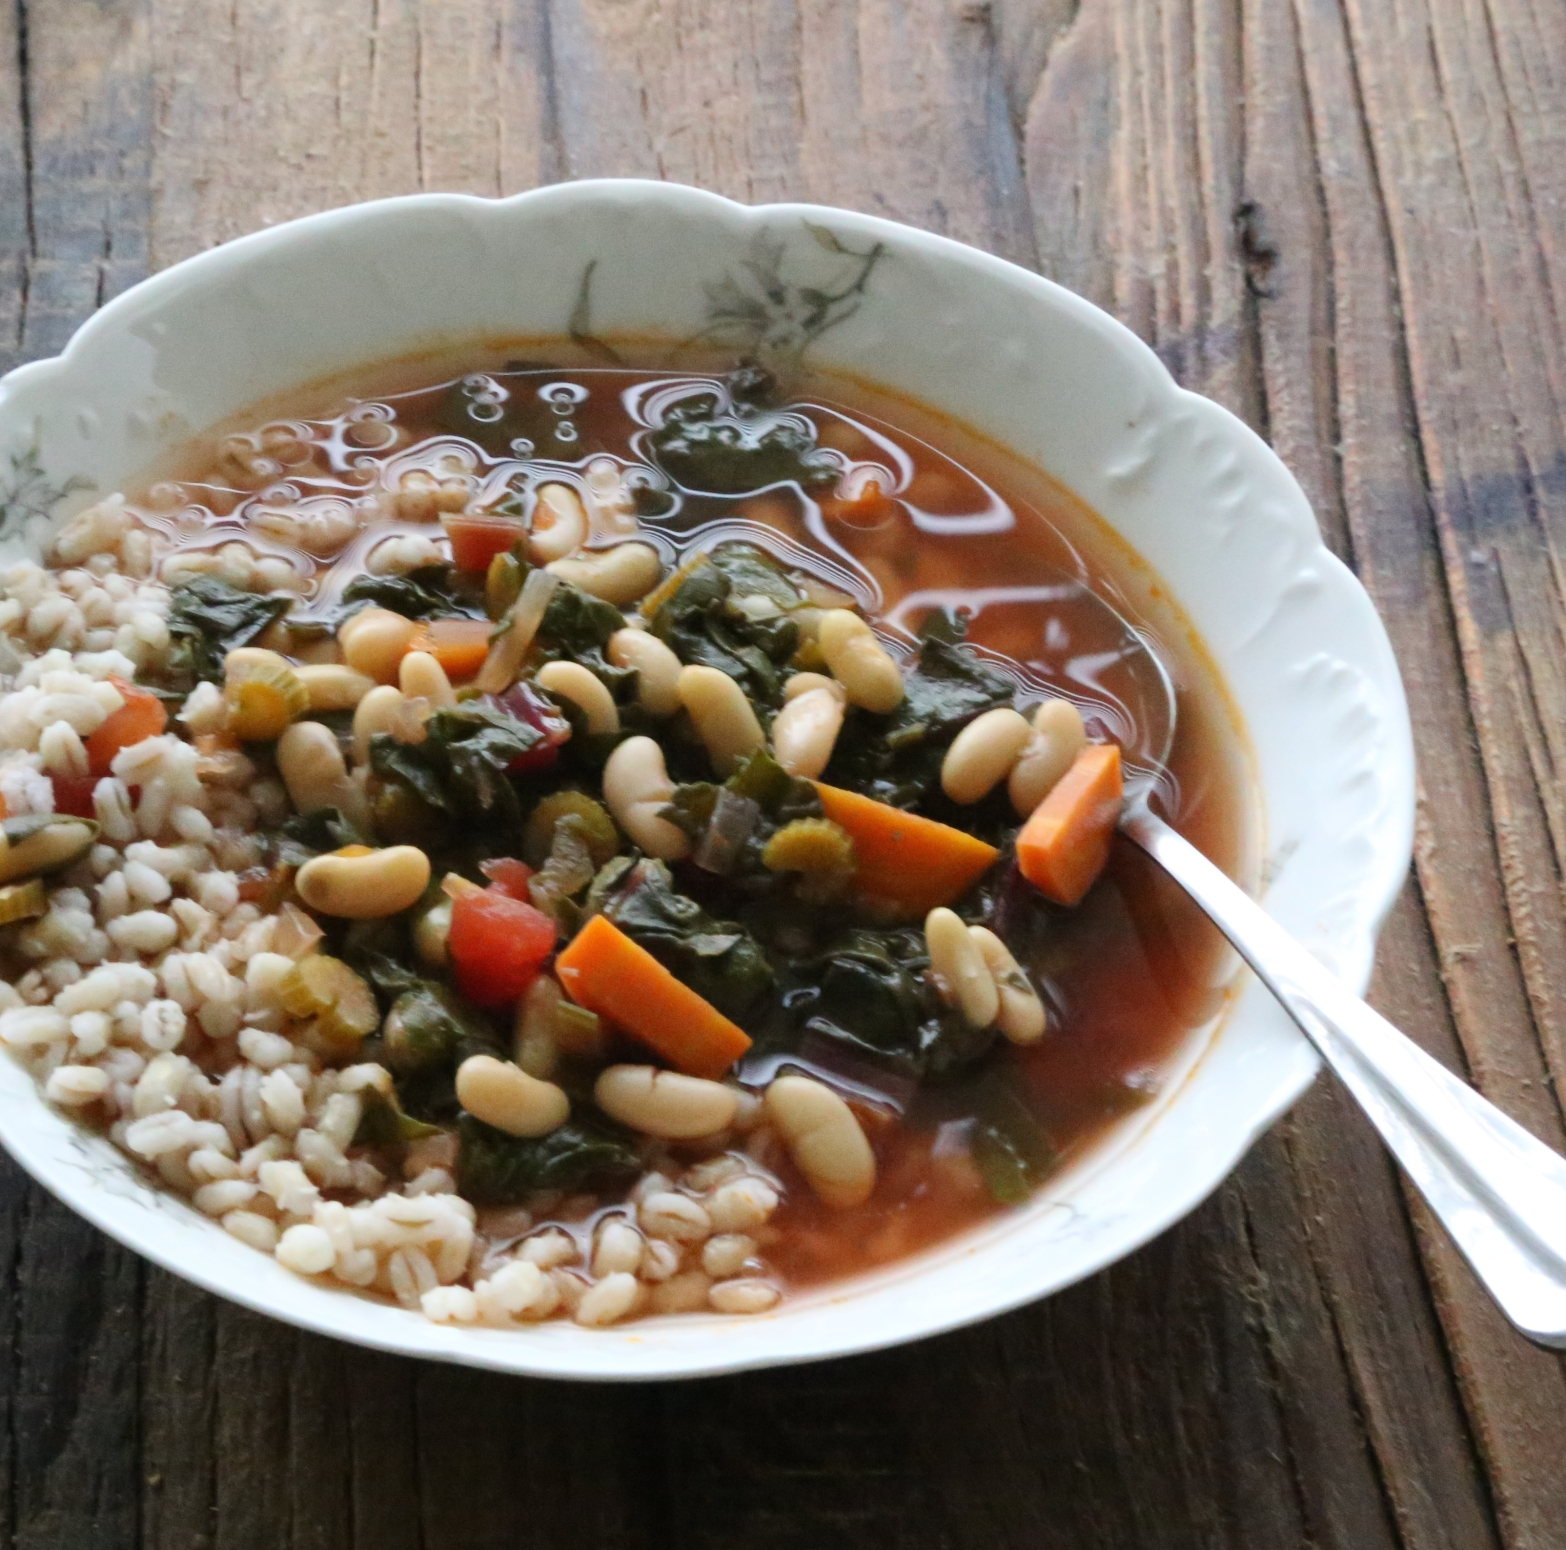 Chad and Barley Soup